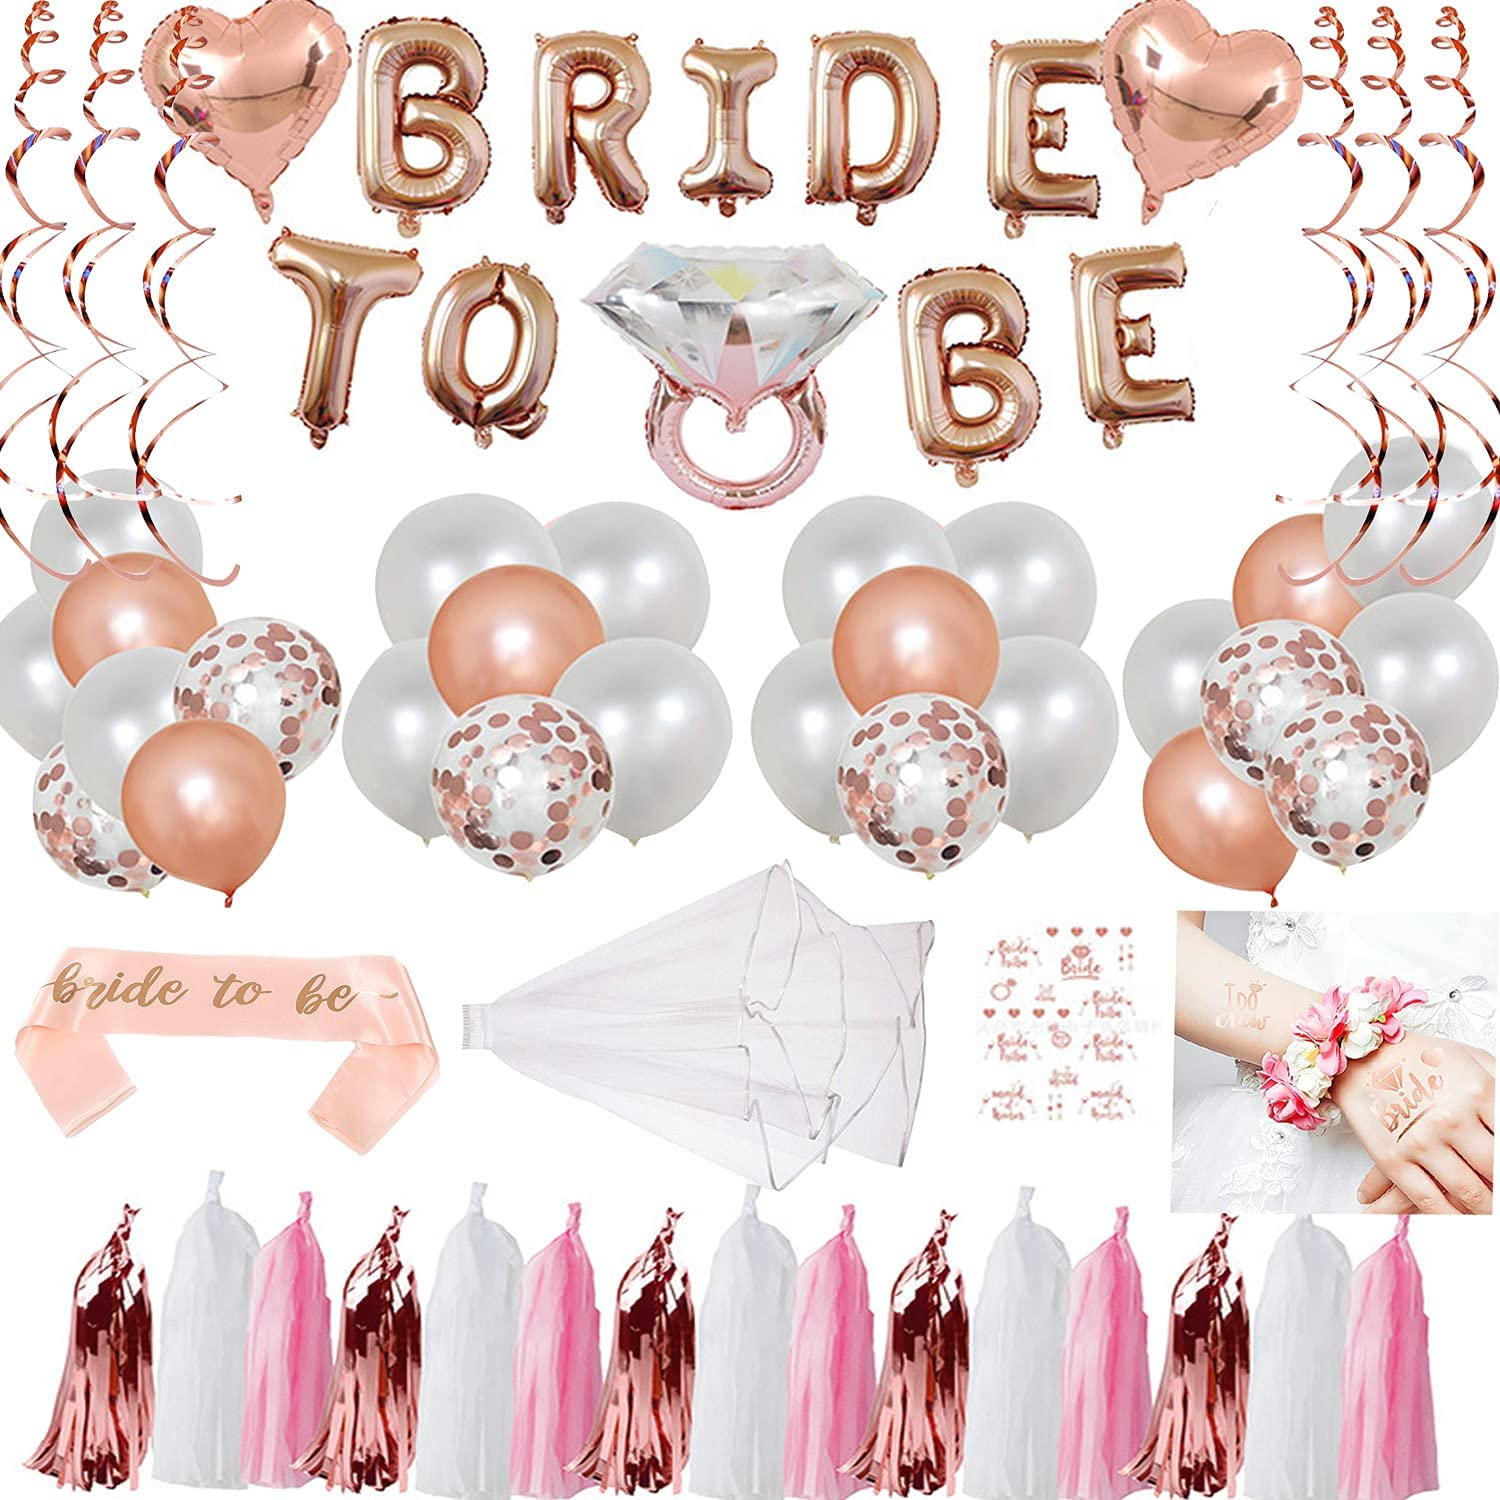 Bachelorette party gadget with balloons and banners